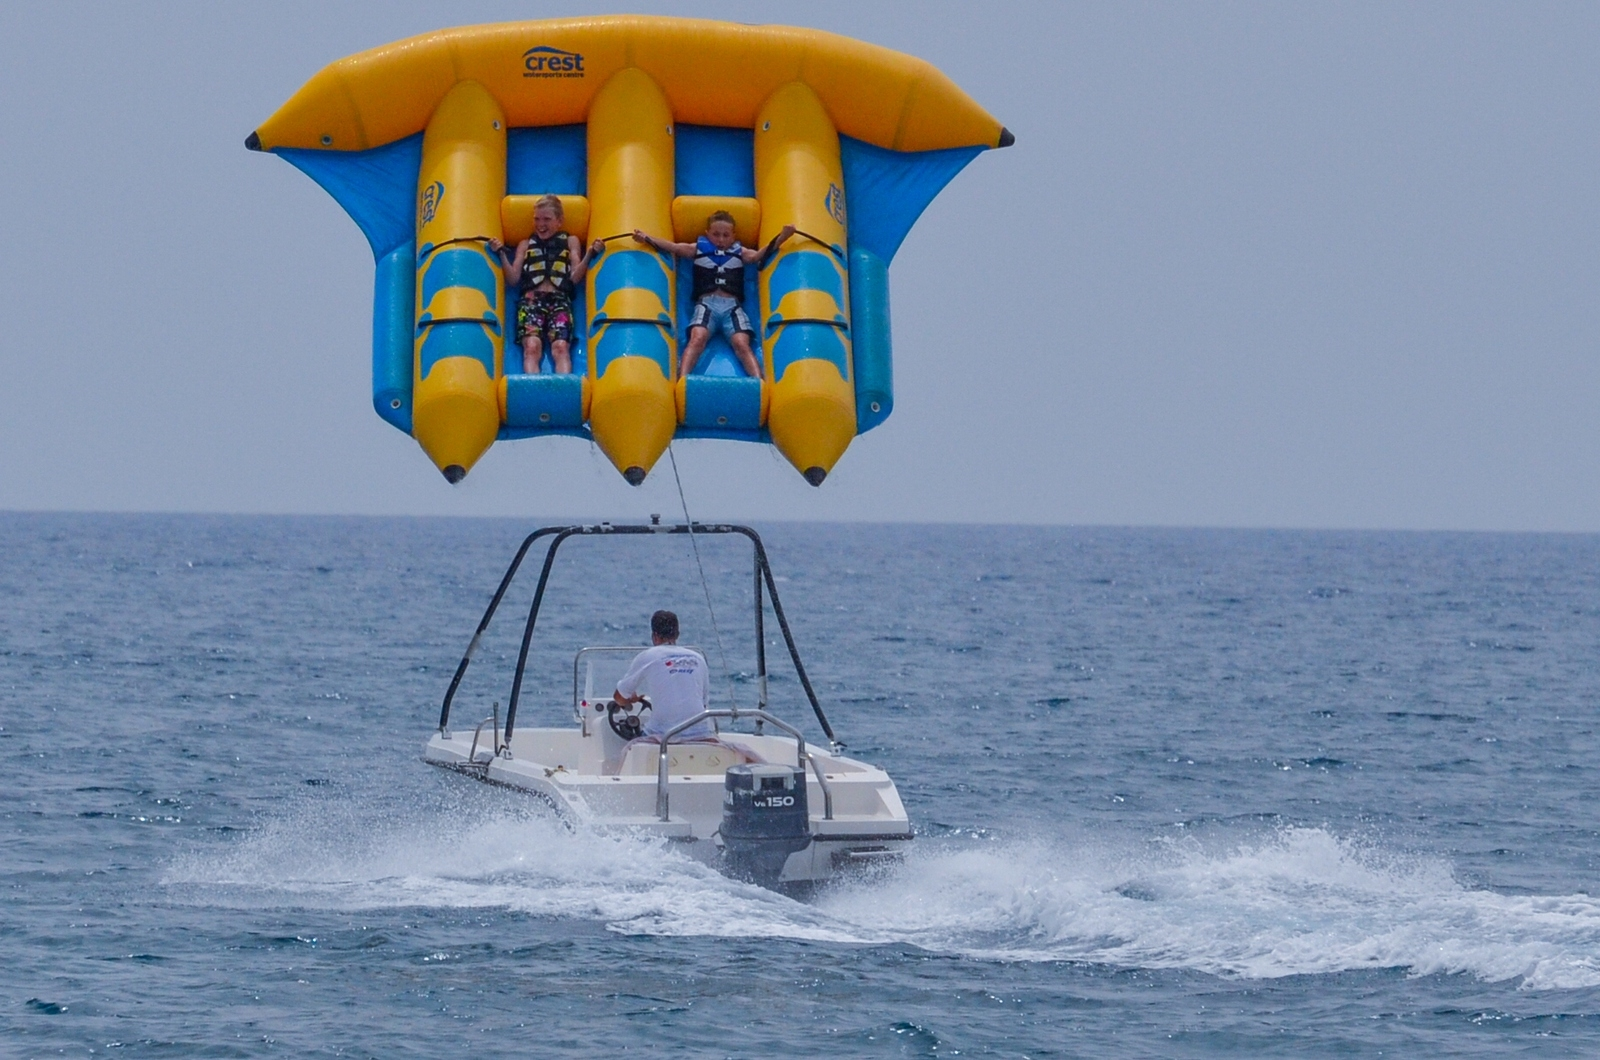 Flying fish water sport - photo#2